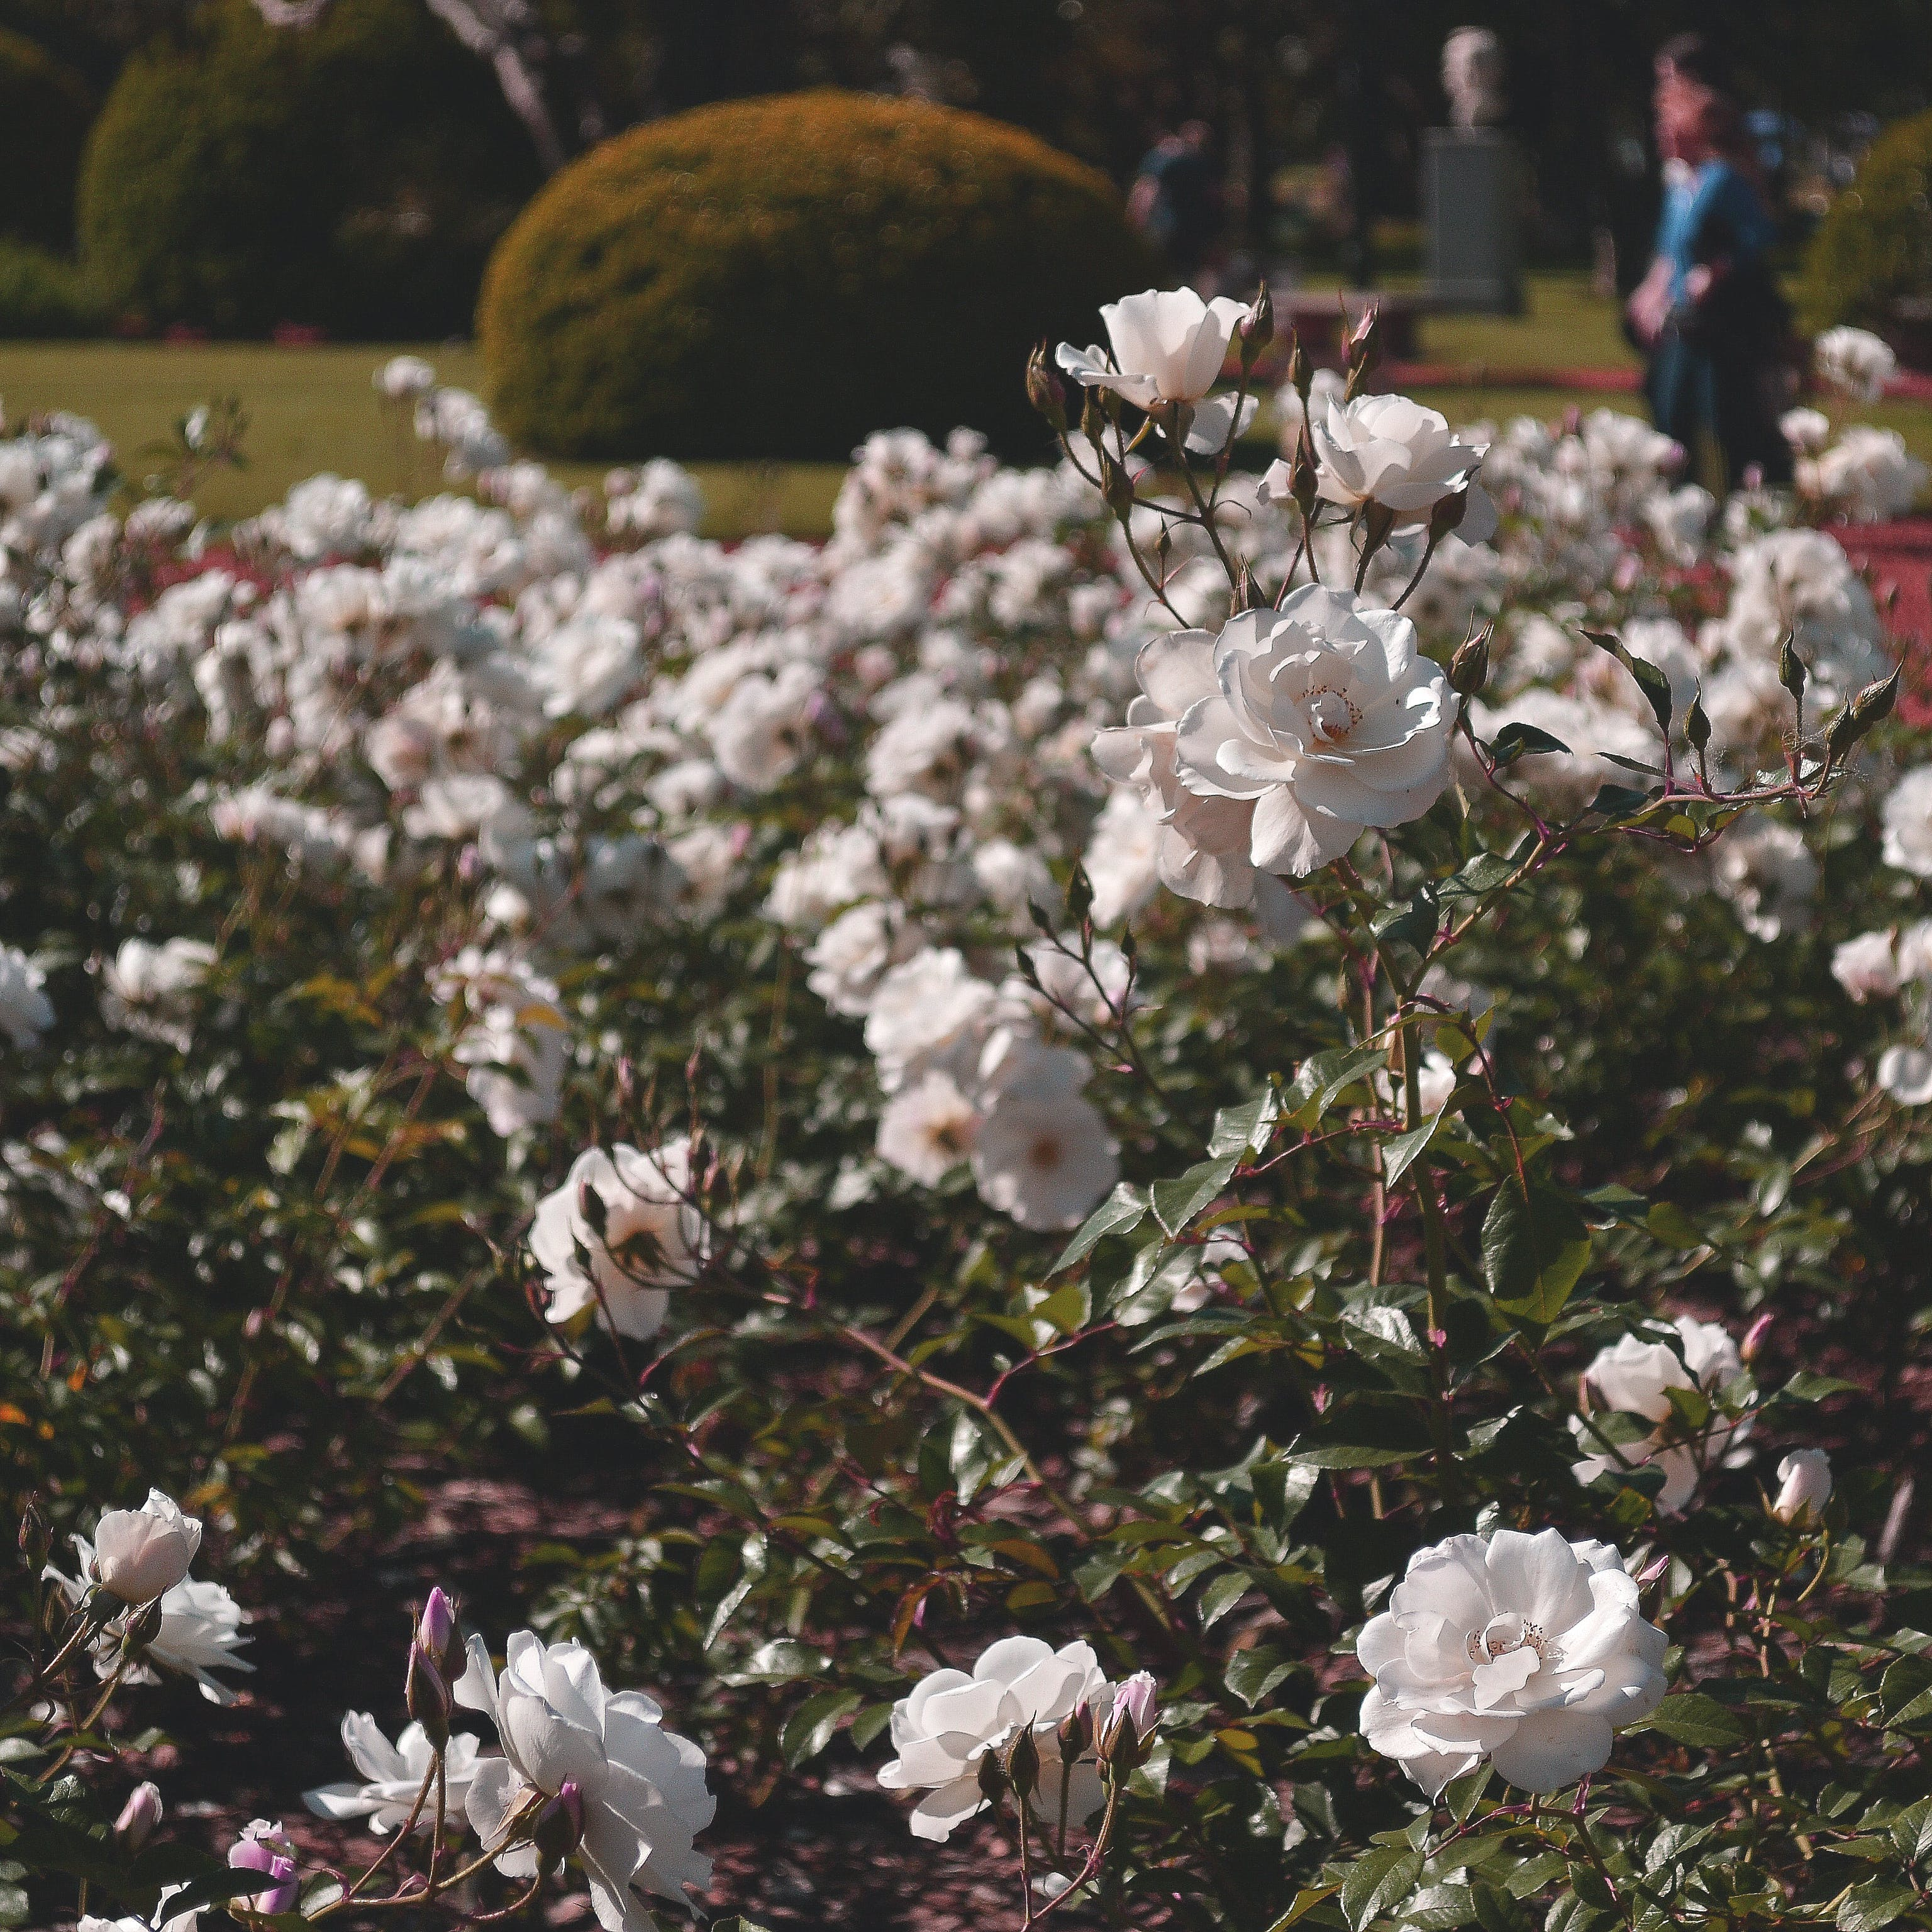 Selective Focus Photography of White Roses